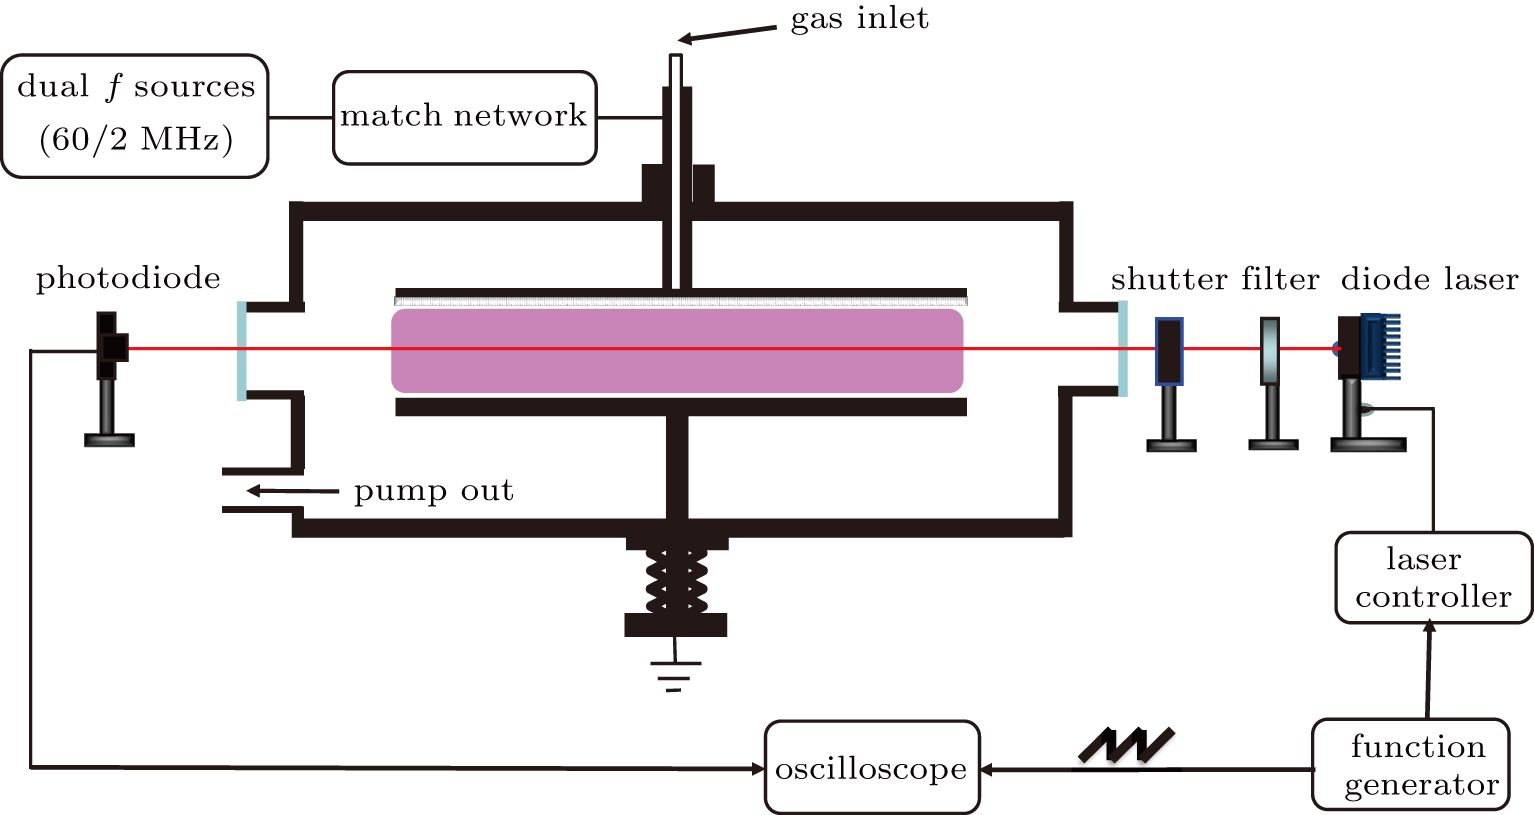 Measurements Of Argon Metastable Density Using The Tunable Diode Laser Driver Circuit Color Online Schematic Df Capacitively Coupled Plasma Reactor Equipped With Absorption Spectroscopy Tdlas Diagnostic